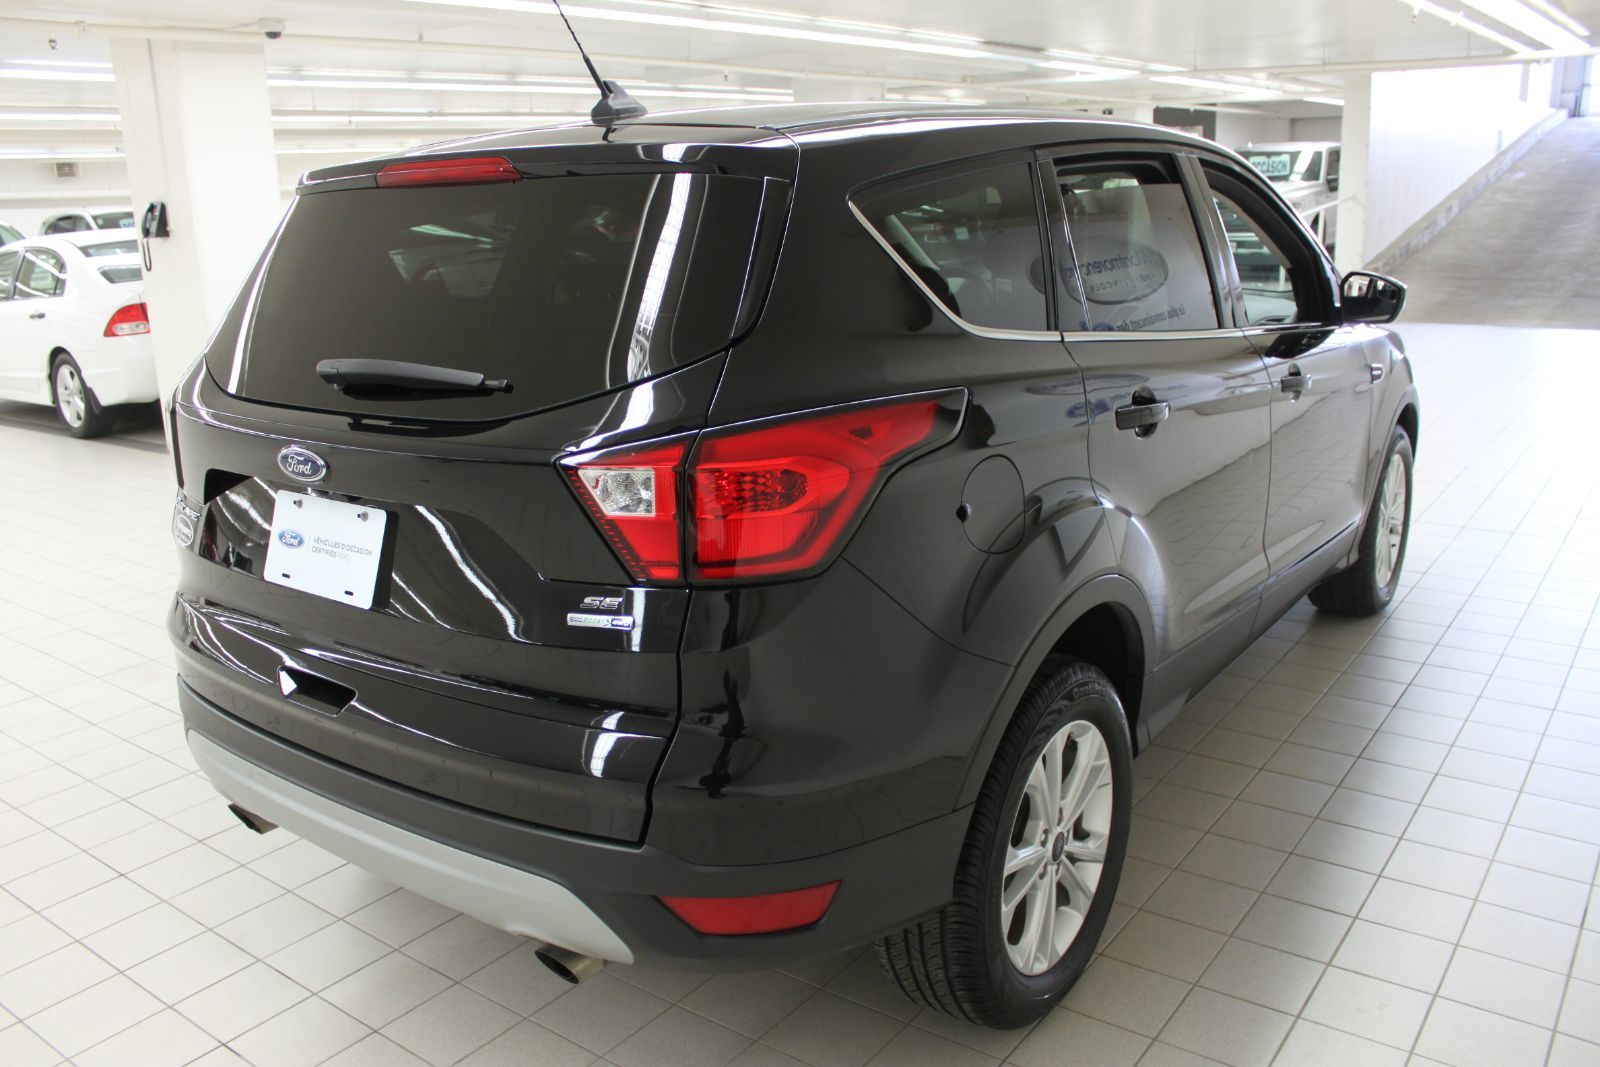 2019 Ford Escape complet